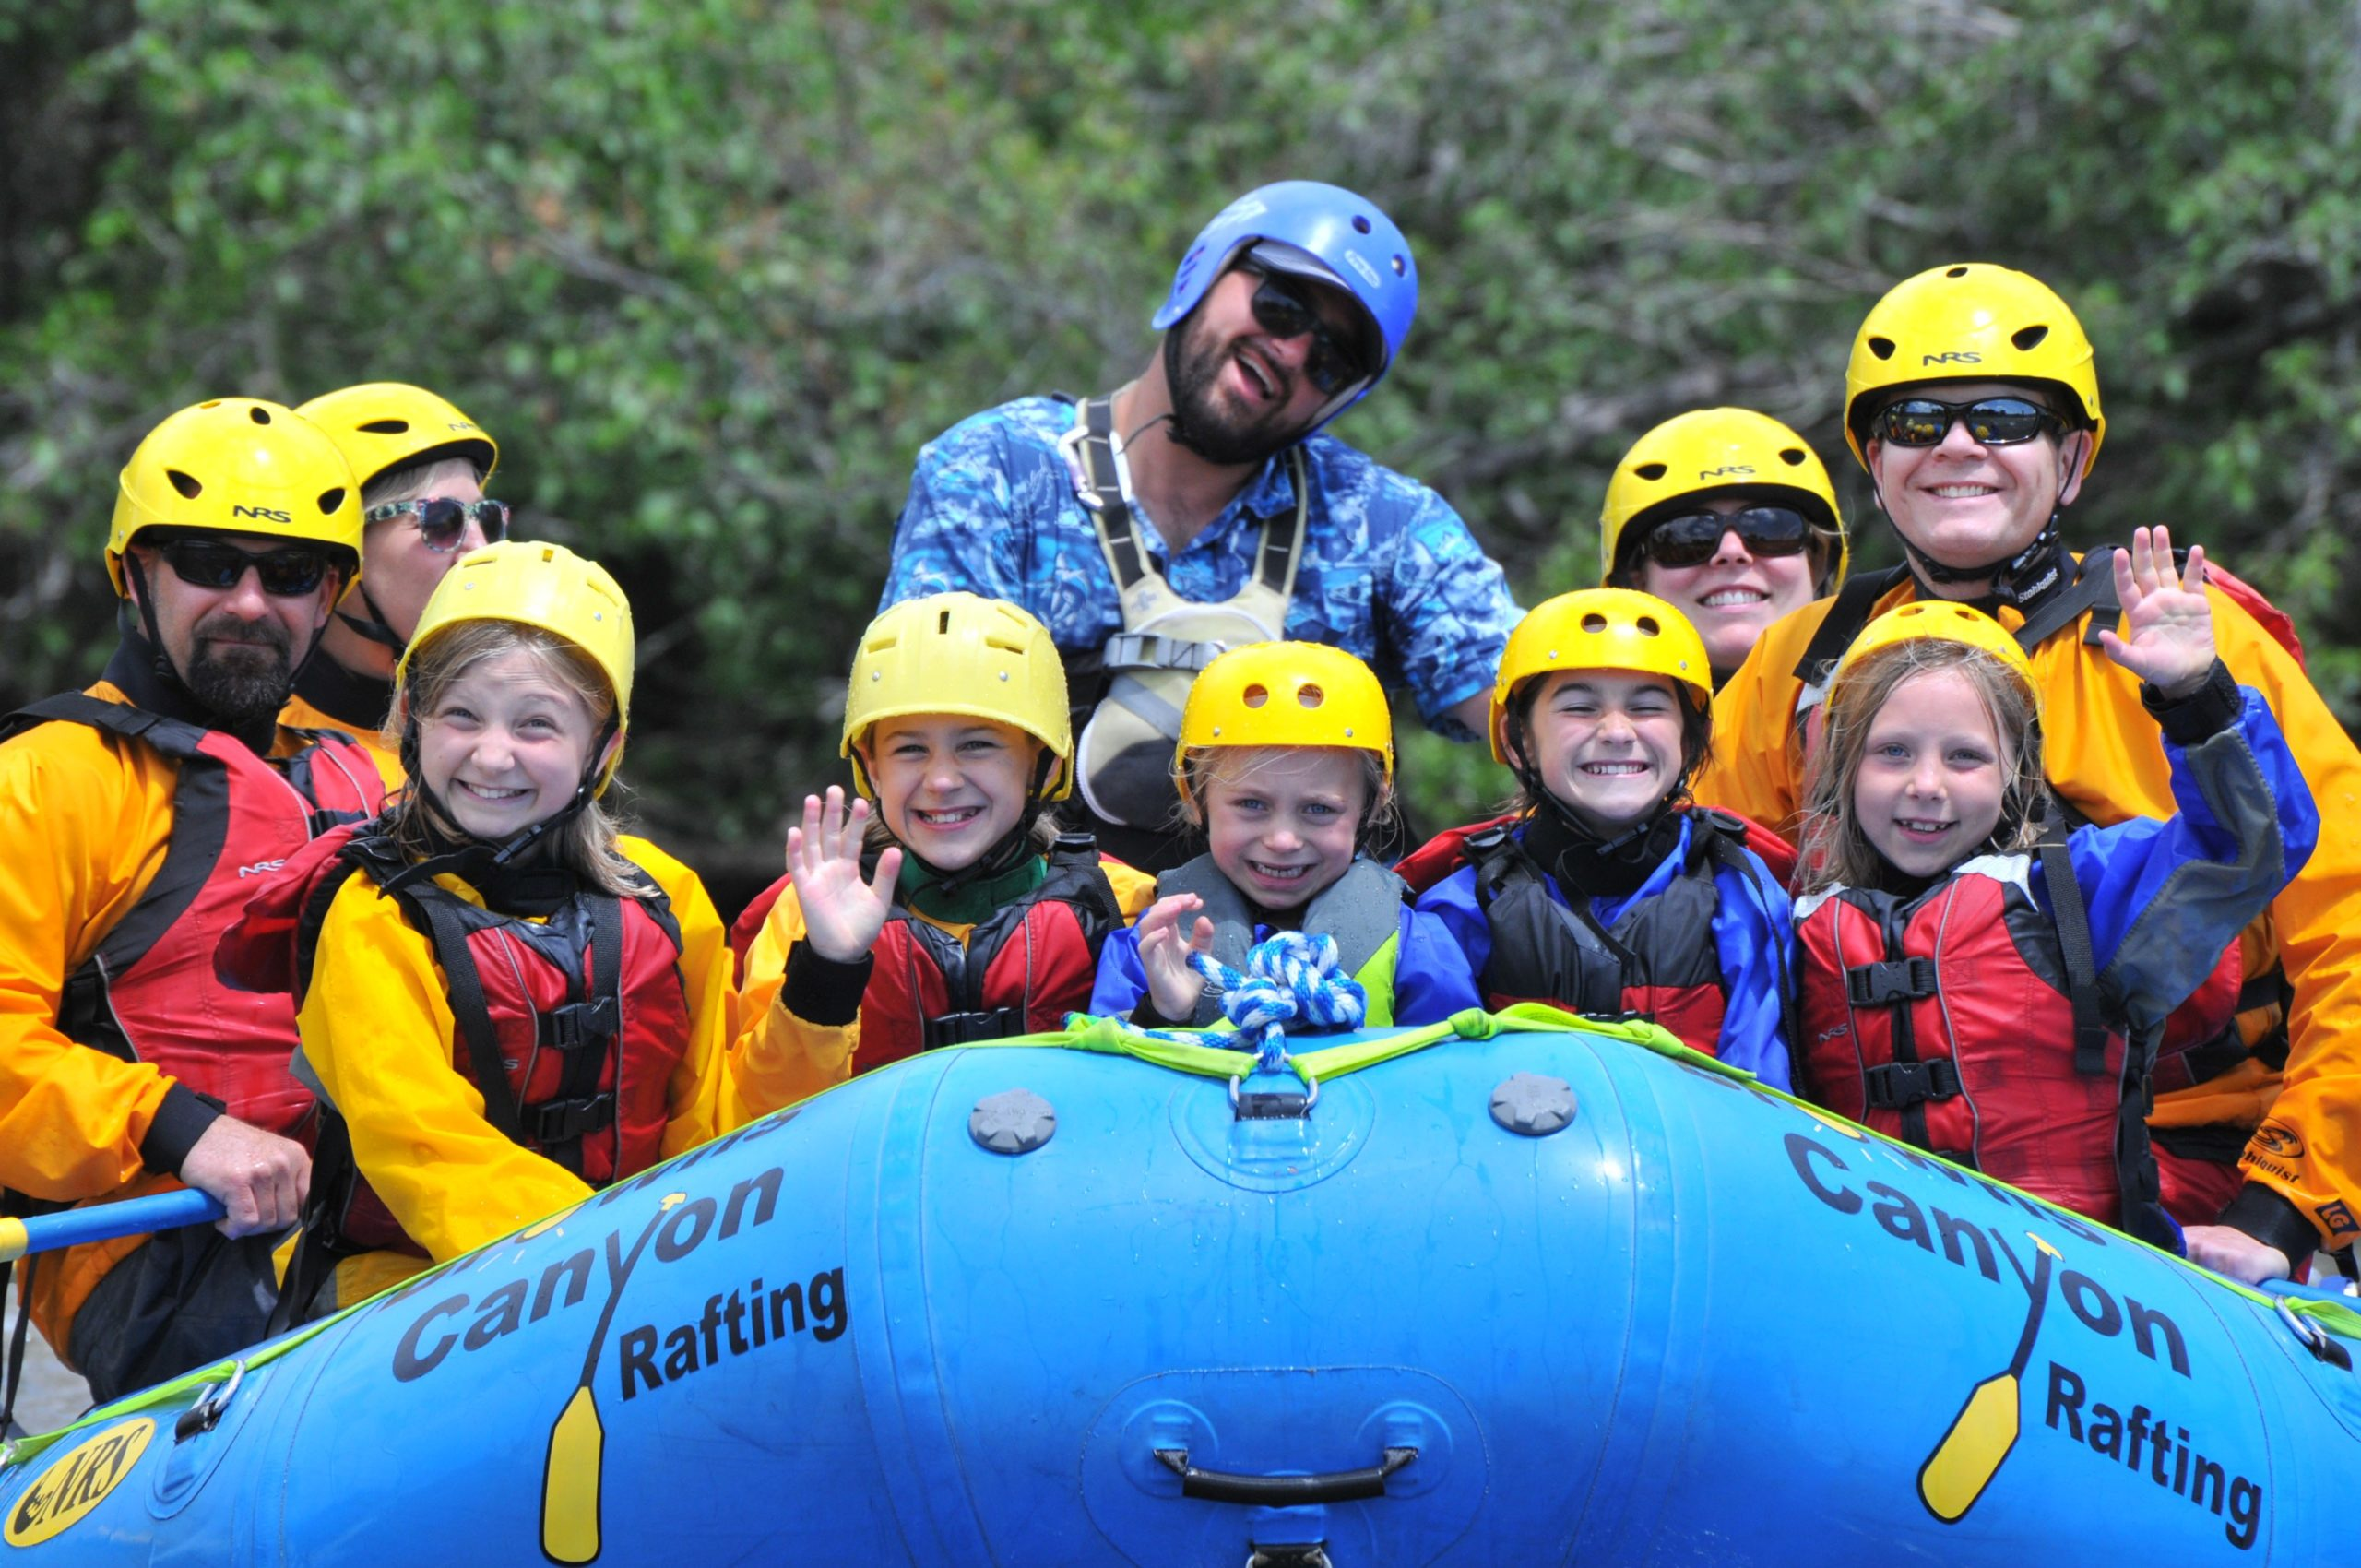 Colorado beginner rafting trips